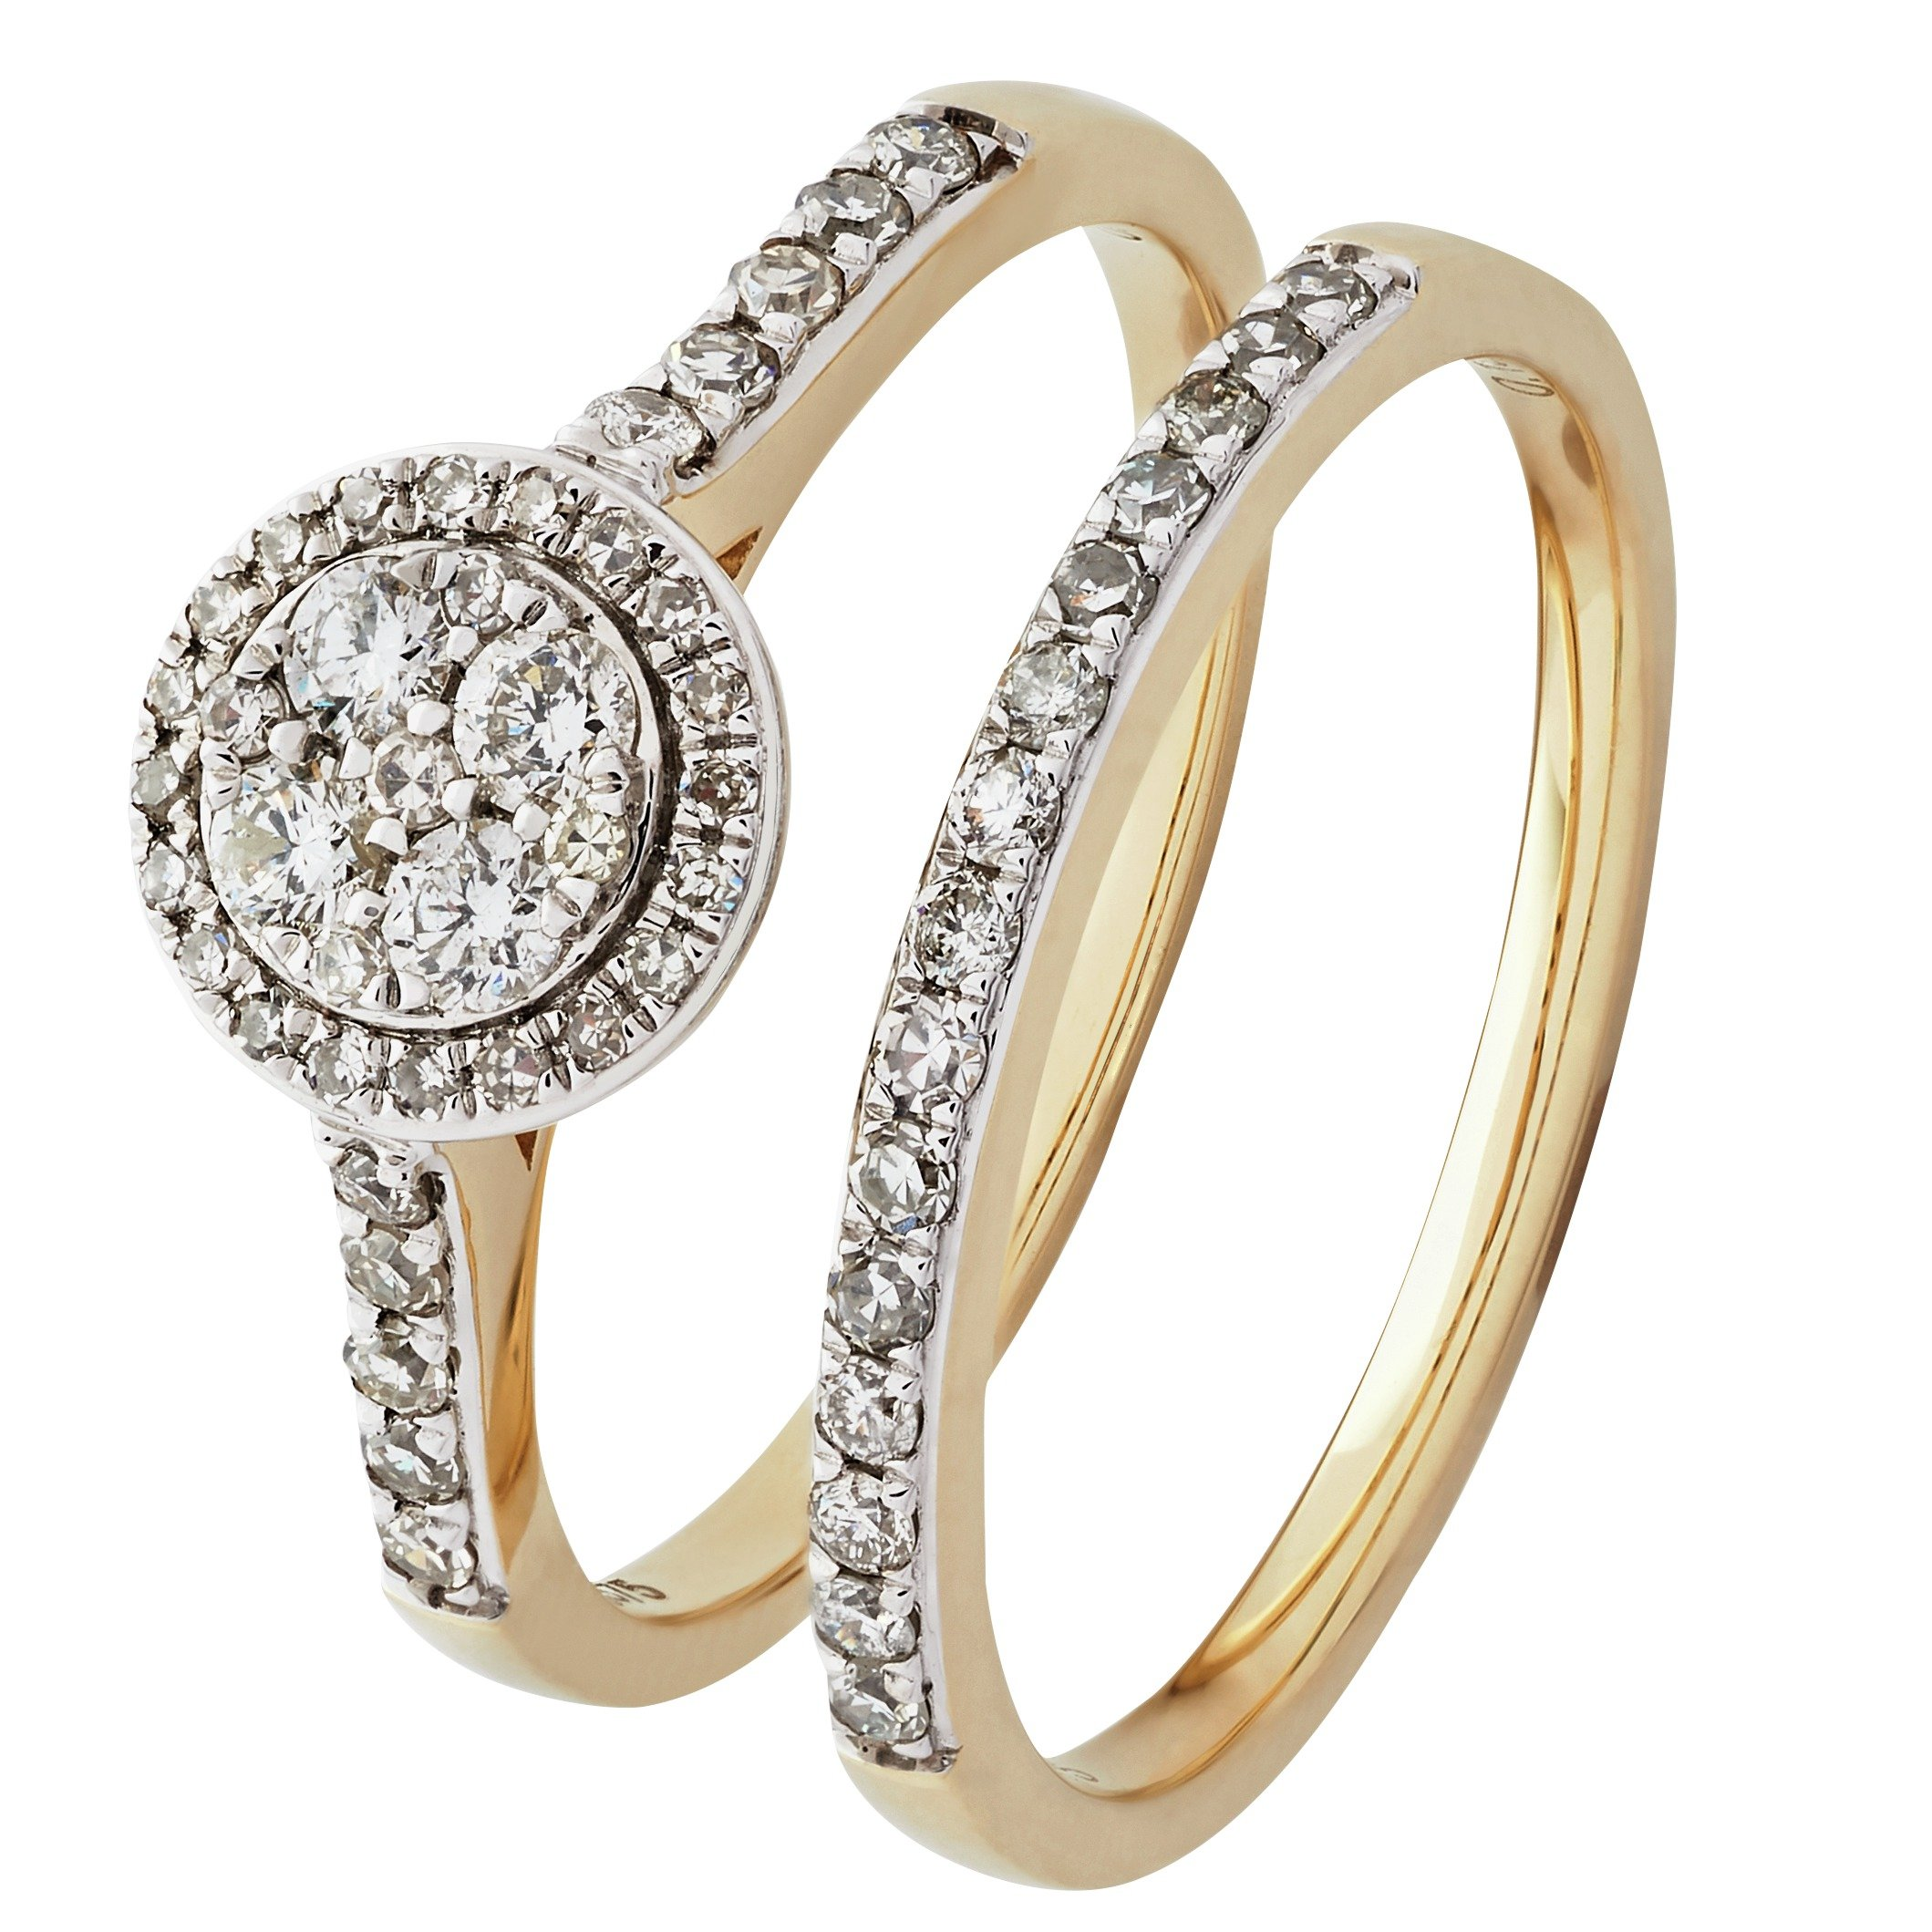 Revere 9ct Yellow Gold 0.50ct tw Diamond Bridal Ring Set